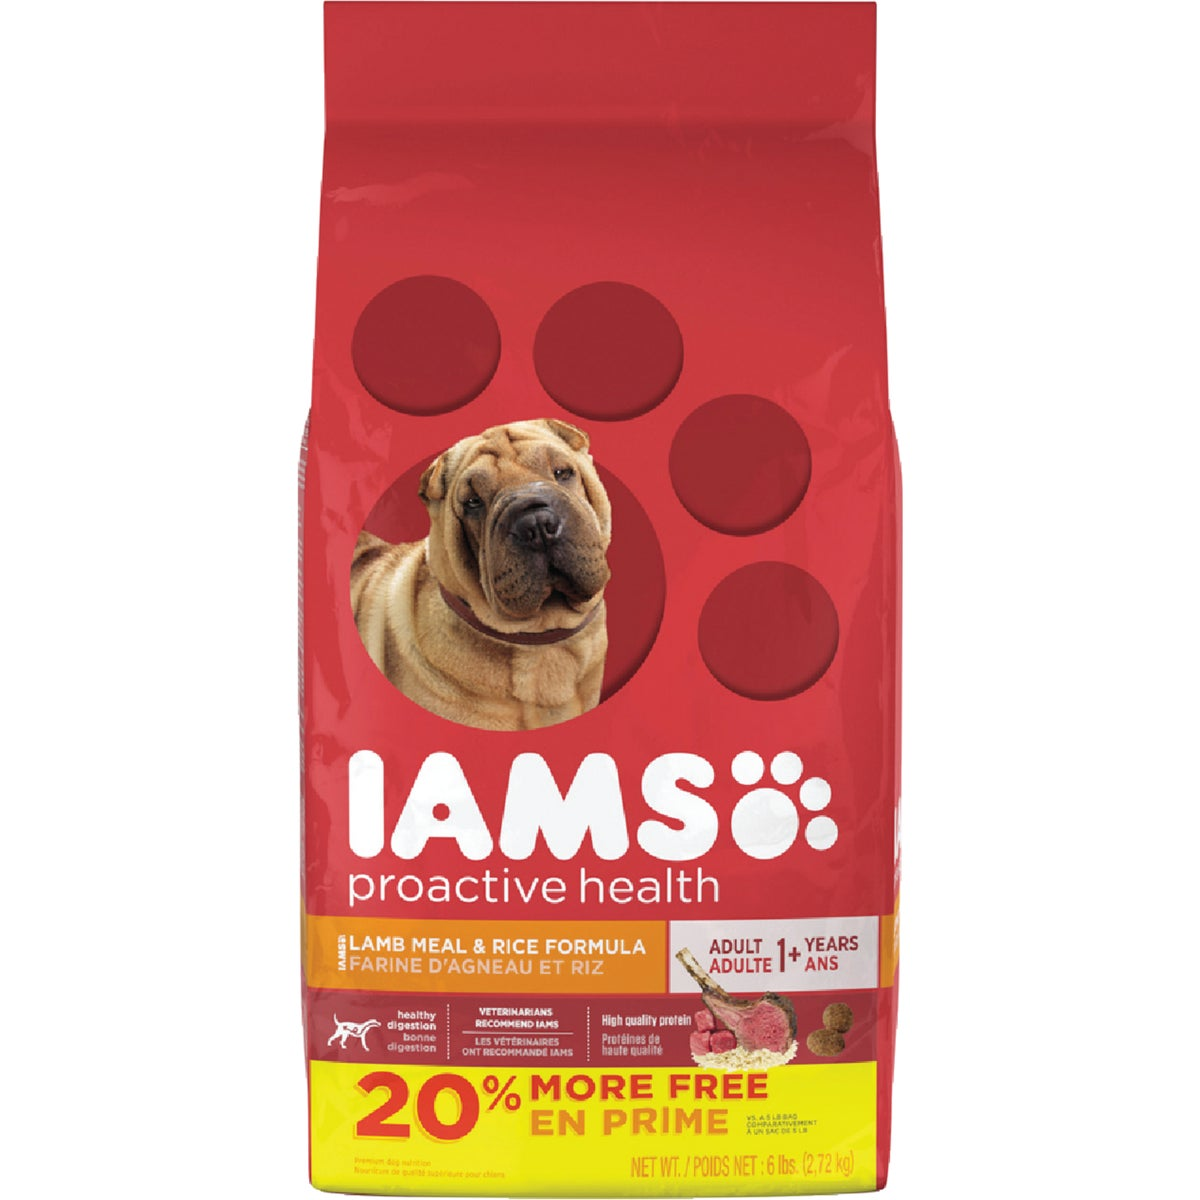 5LB LAMB/RICE DOG FOOD - 10938 by Wolverton Iams